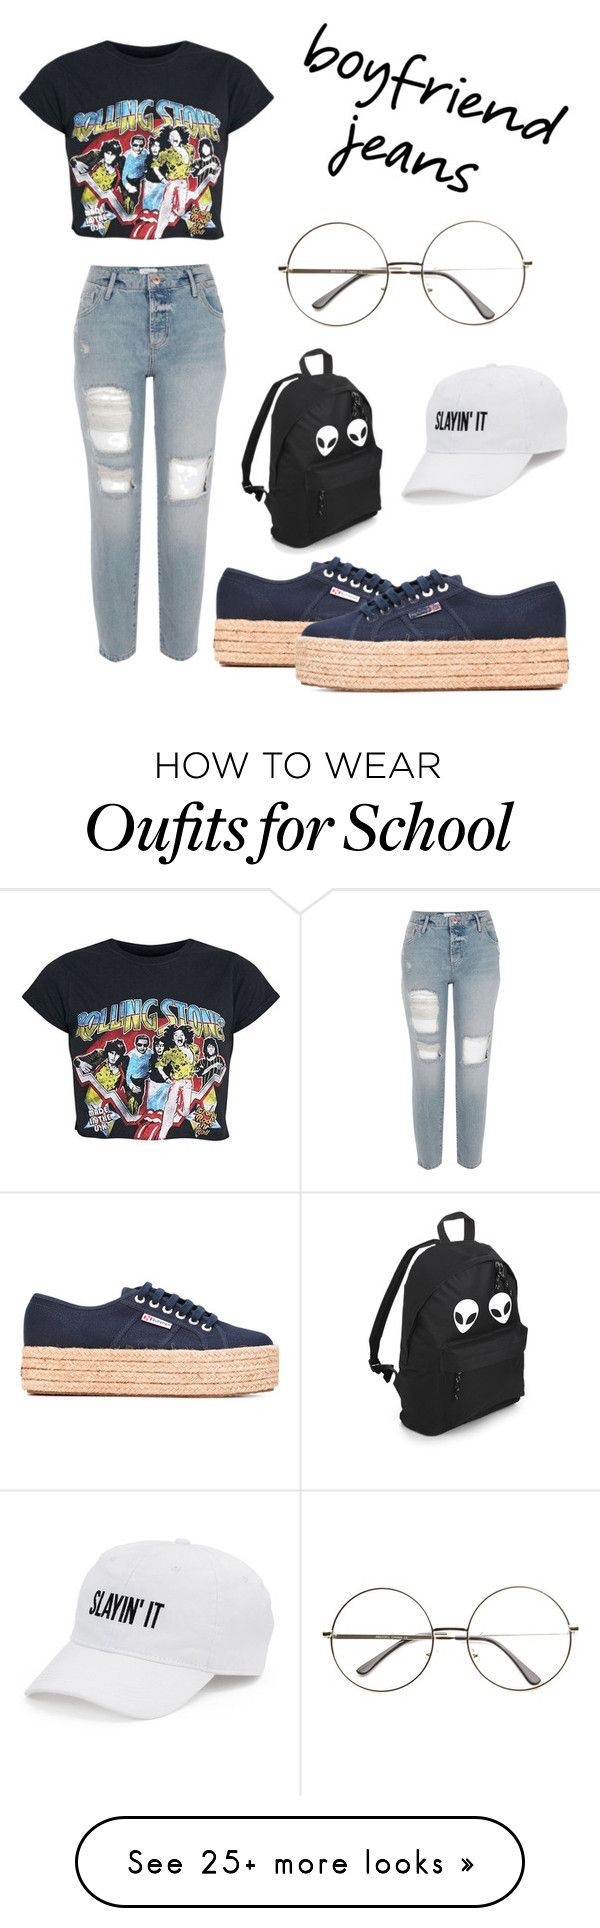 """Untitled #44"" by bojingo072 on Polyvore featuring Superga and SO"